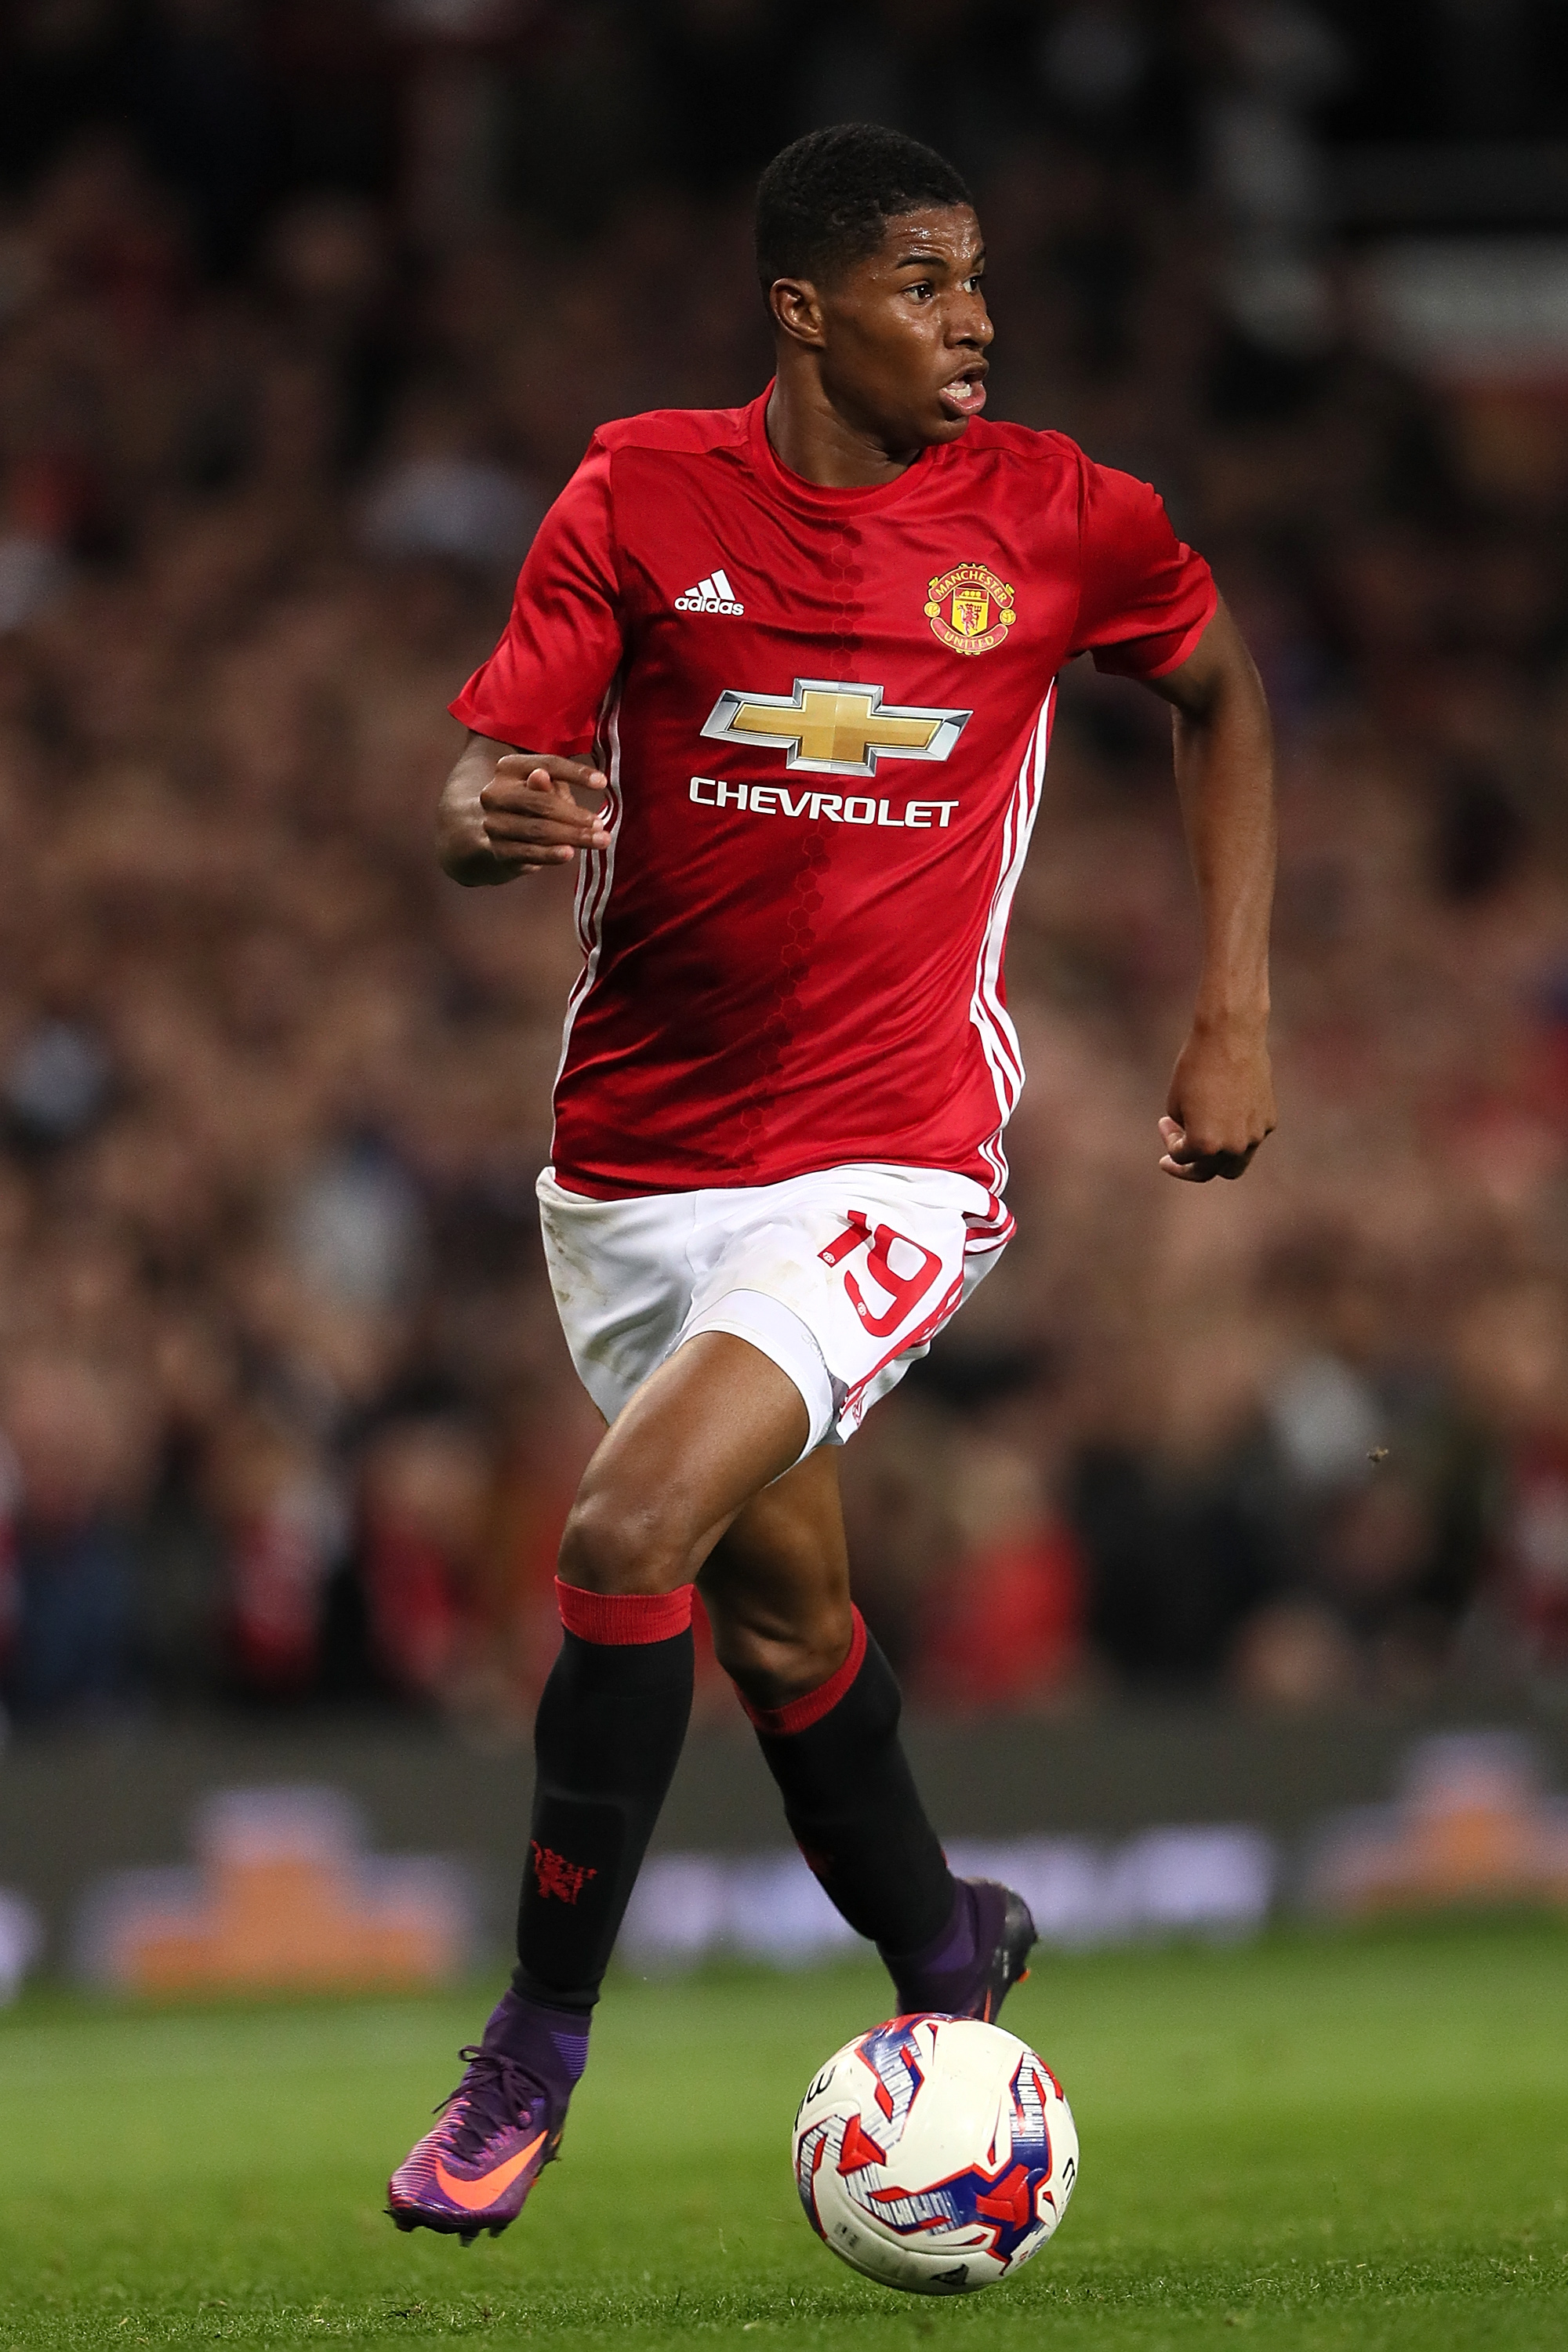 Manchester United- What Has Happened To Martial and Rashford?